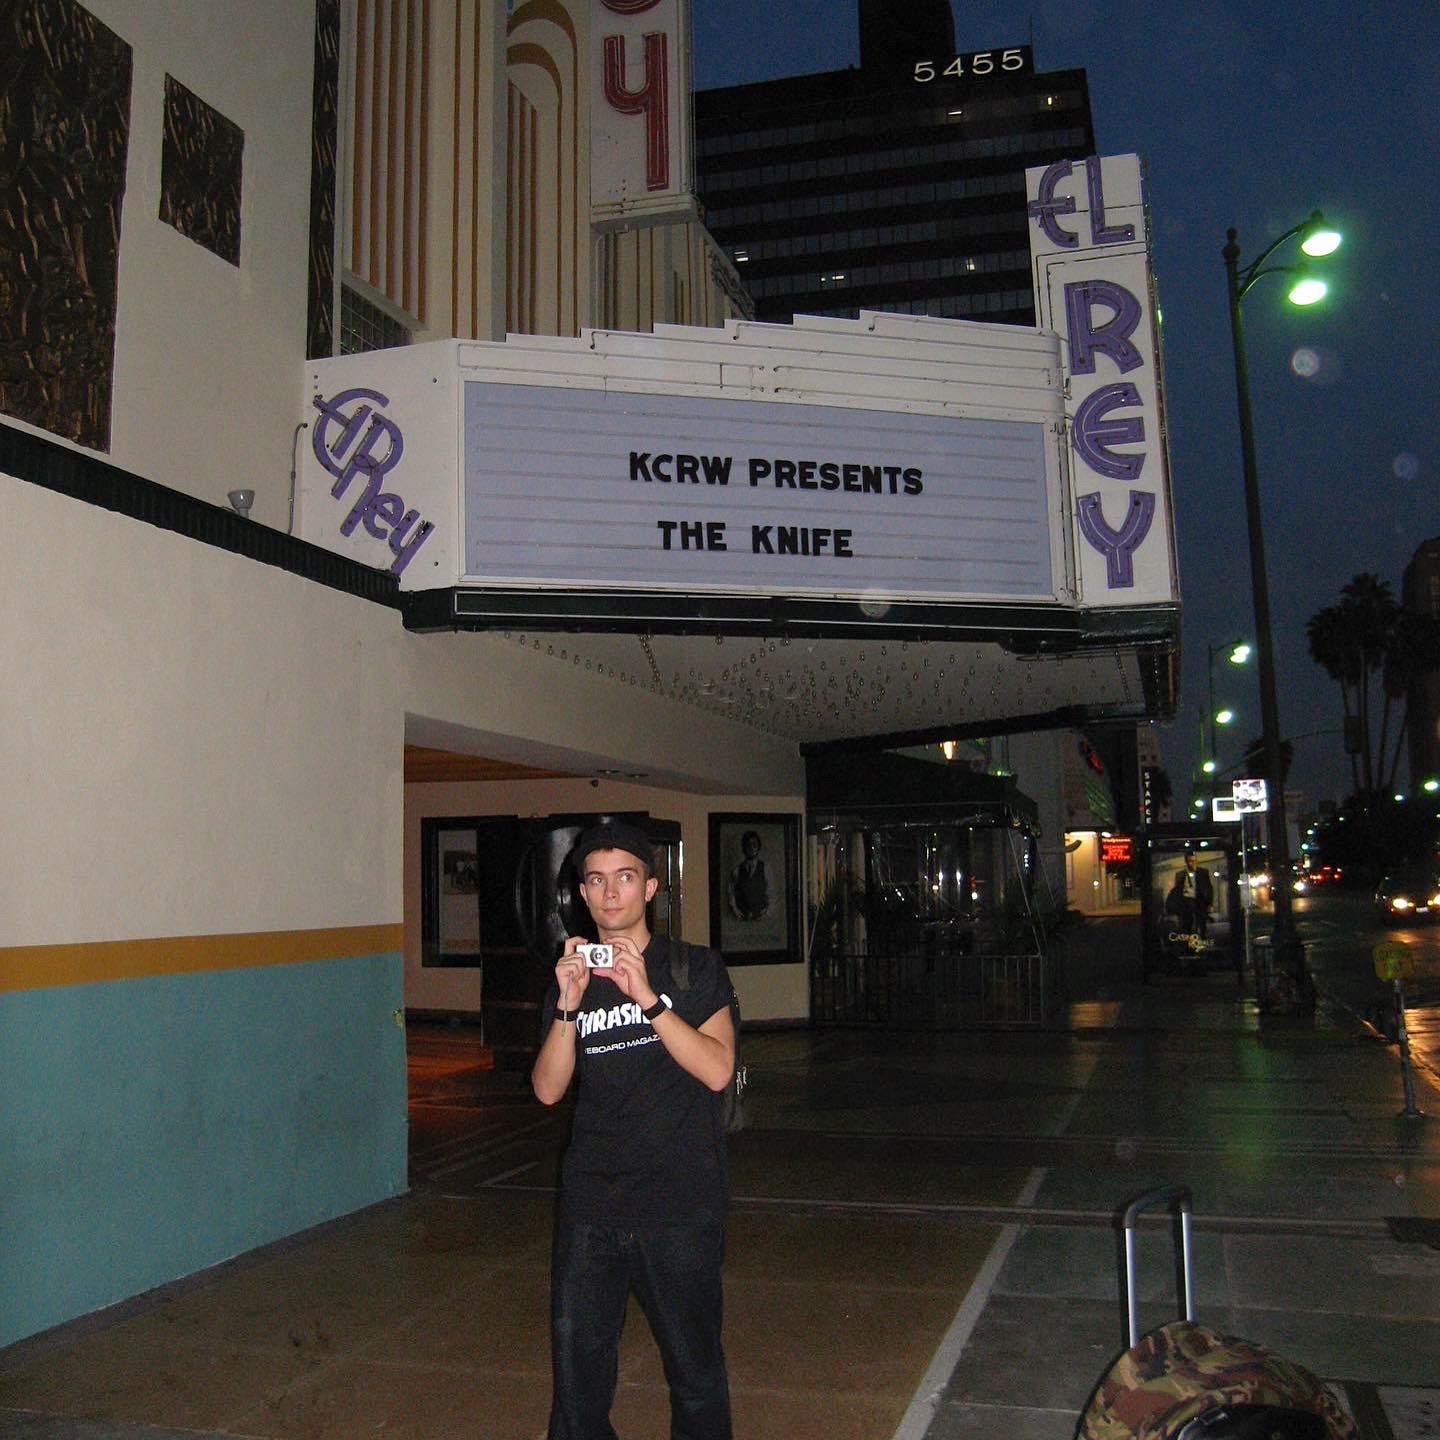 Olof pictured beneath the signage on the El Rey Theatre, LA, holding a point and shoot camera up to his chest, but looking off to the side.